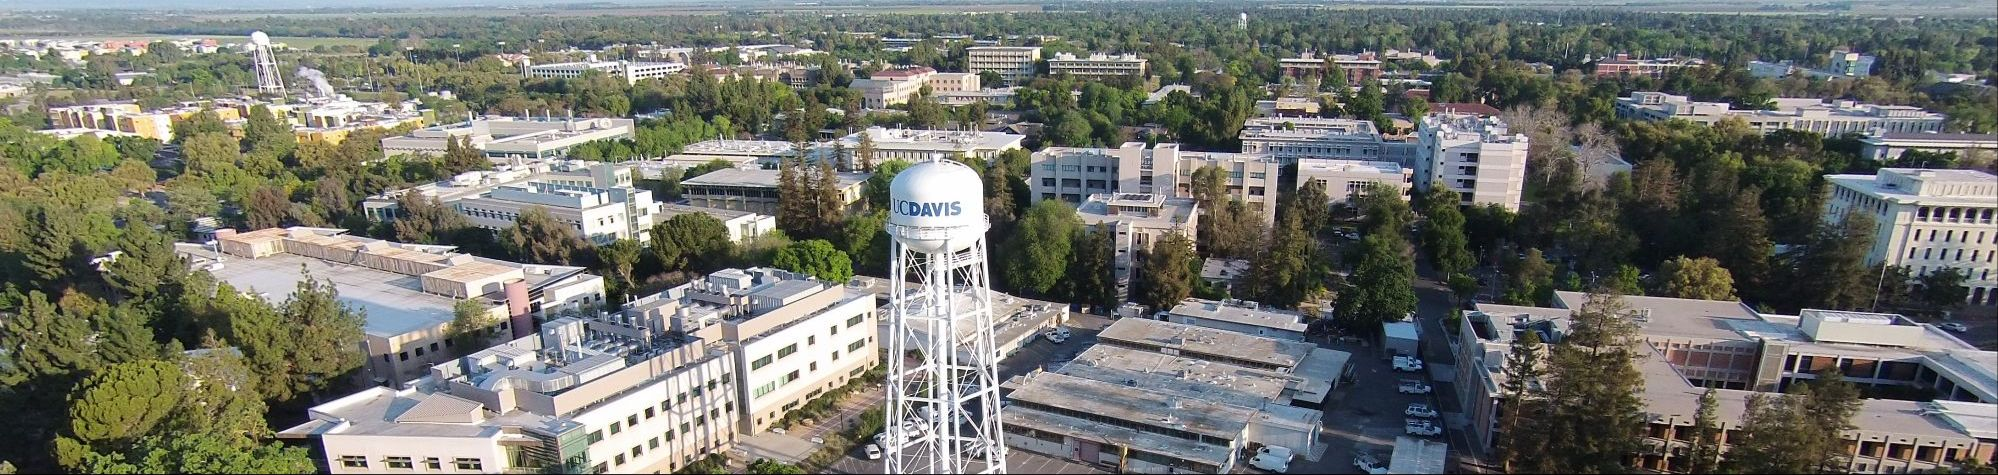 Aerial view of UC Davis watertower, with Math building at rear